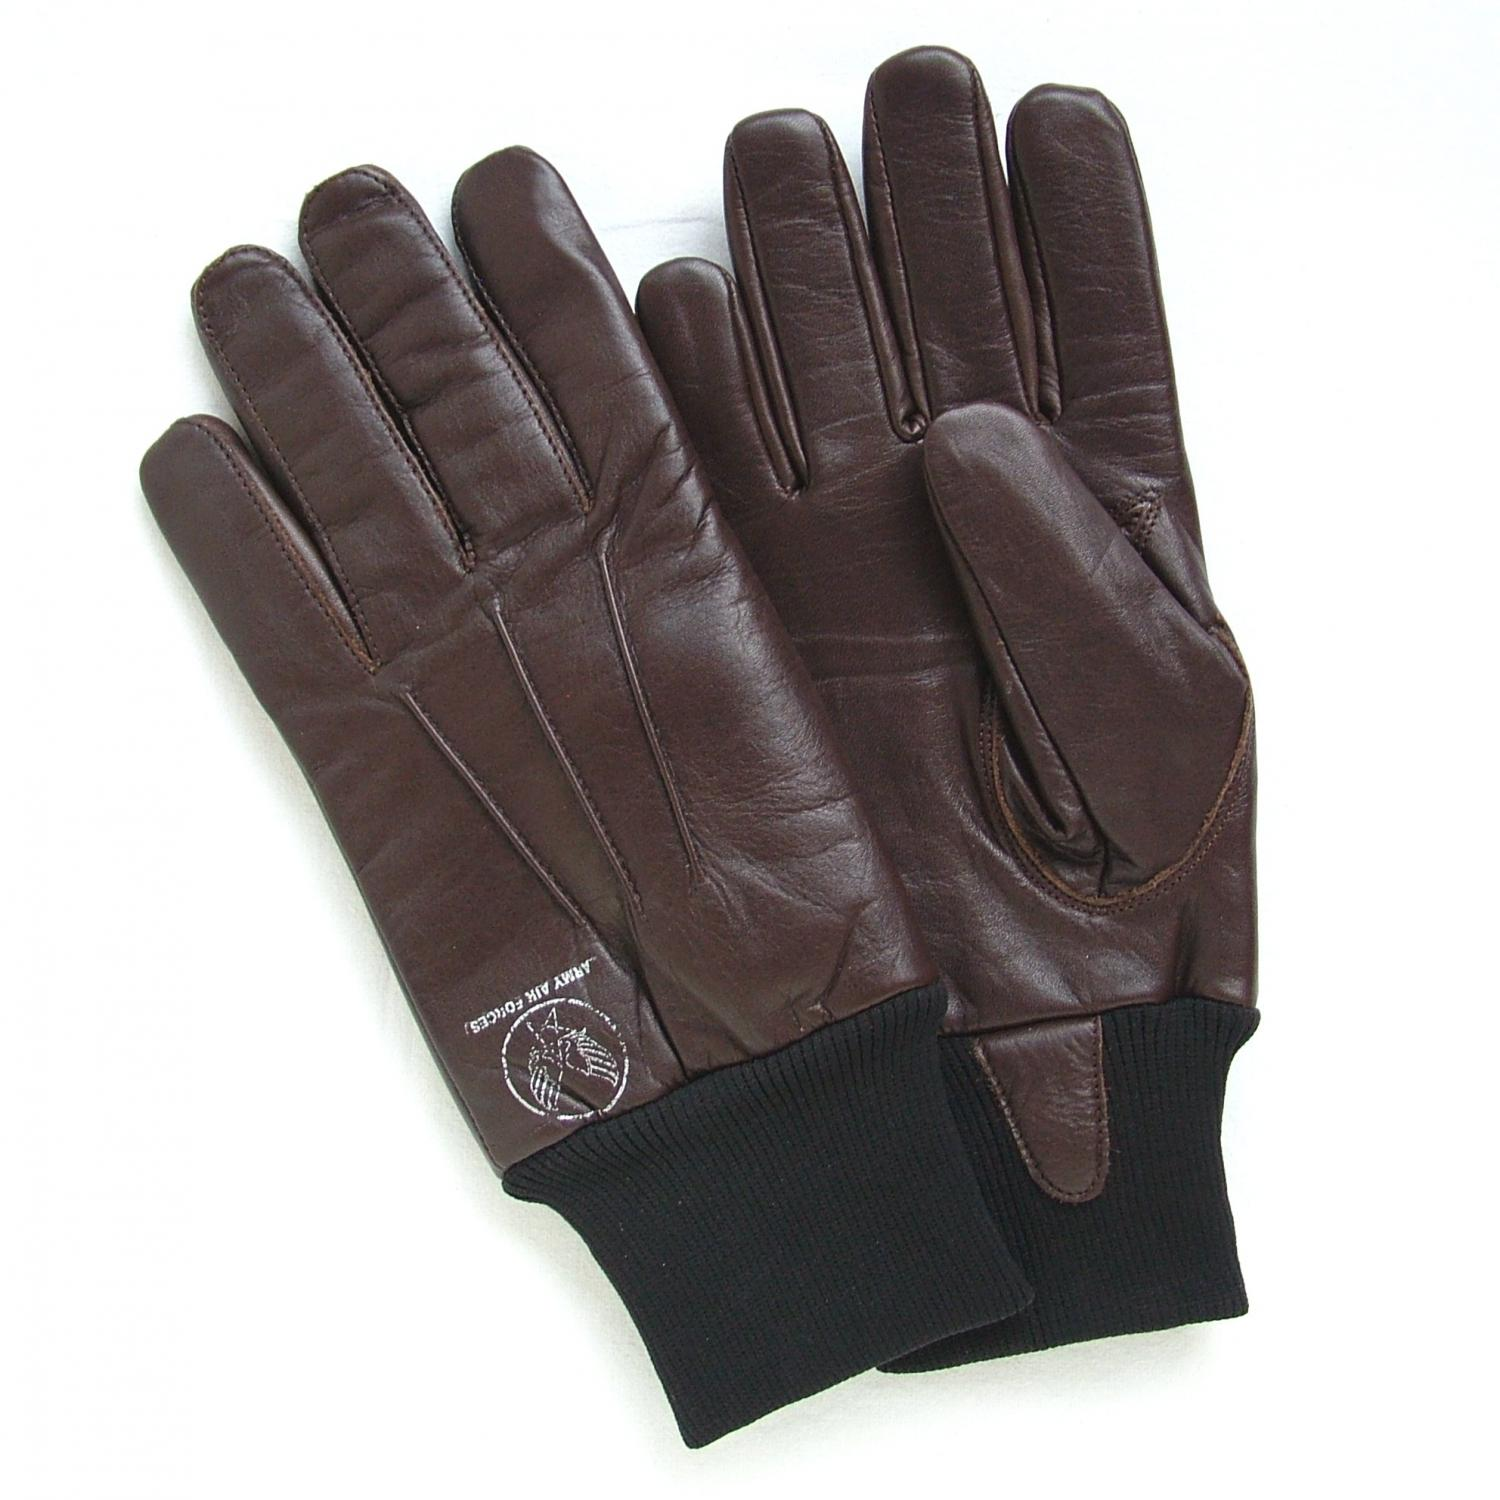 USAAF A-10 Flying Gloves - Repro